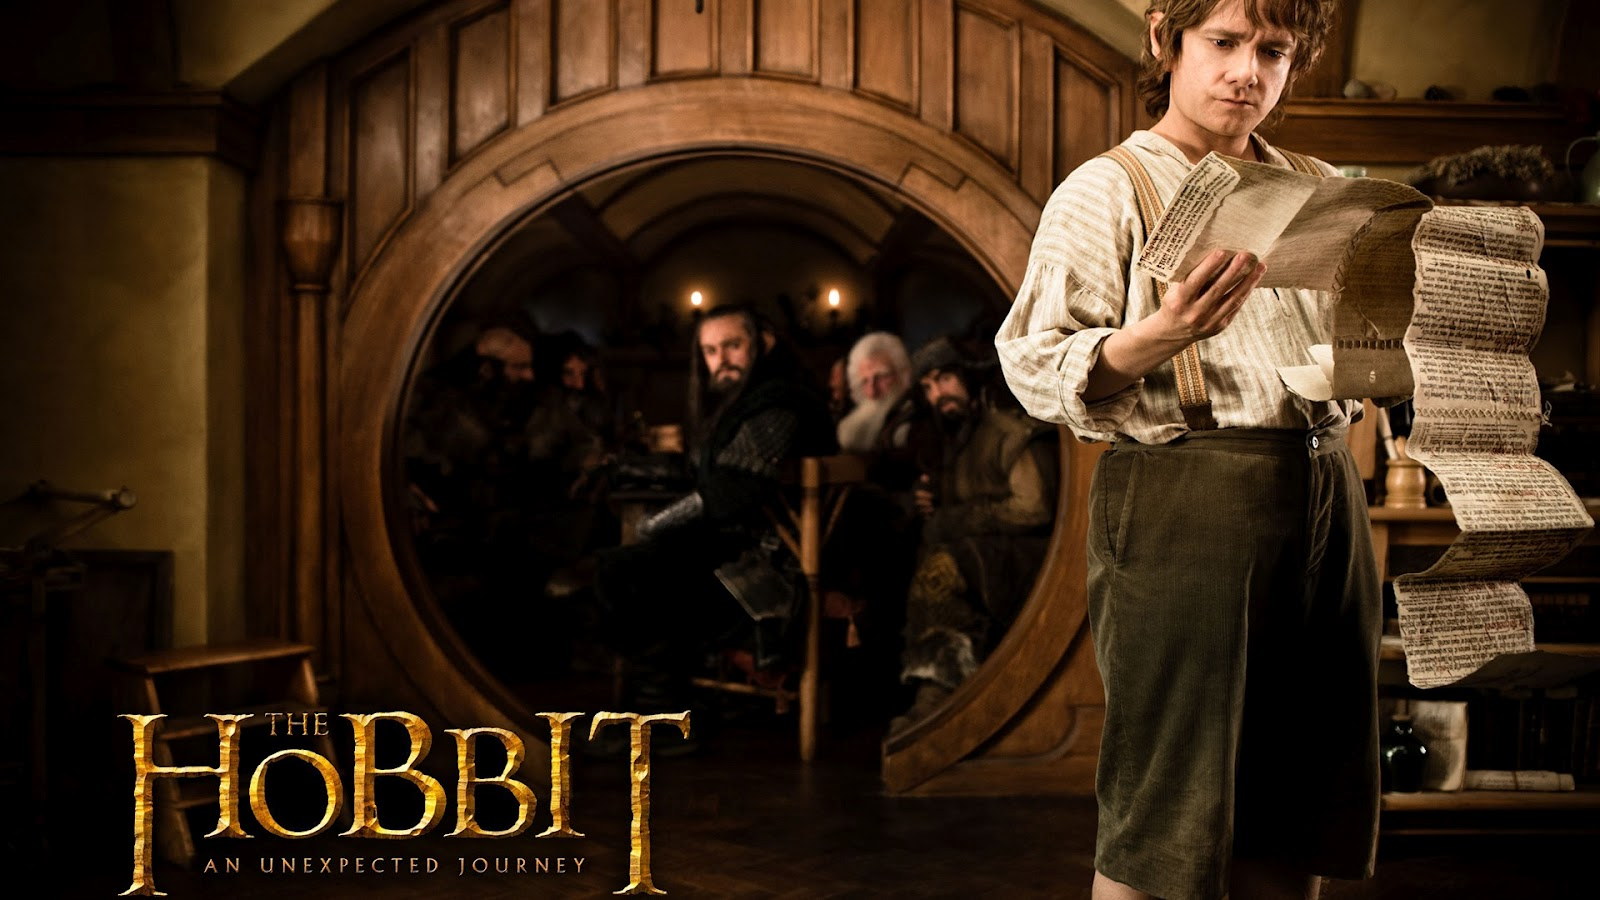 http://4.bp.blogspot.com/-Hnc66laKXpY/T7L-uifu9jI/AAAAAAAAEfQ/hdEy6B8fbQk/s1600/The+Hobbit+An+Unexpected+Journey+HD+Wallpaper+13.jpg